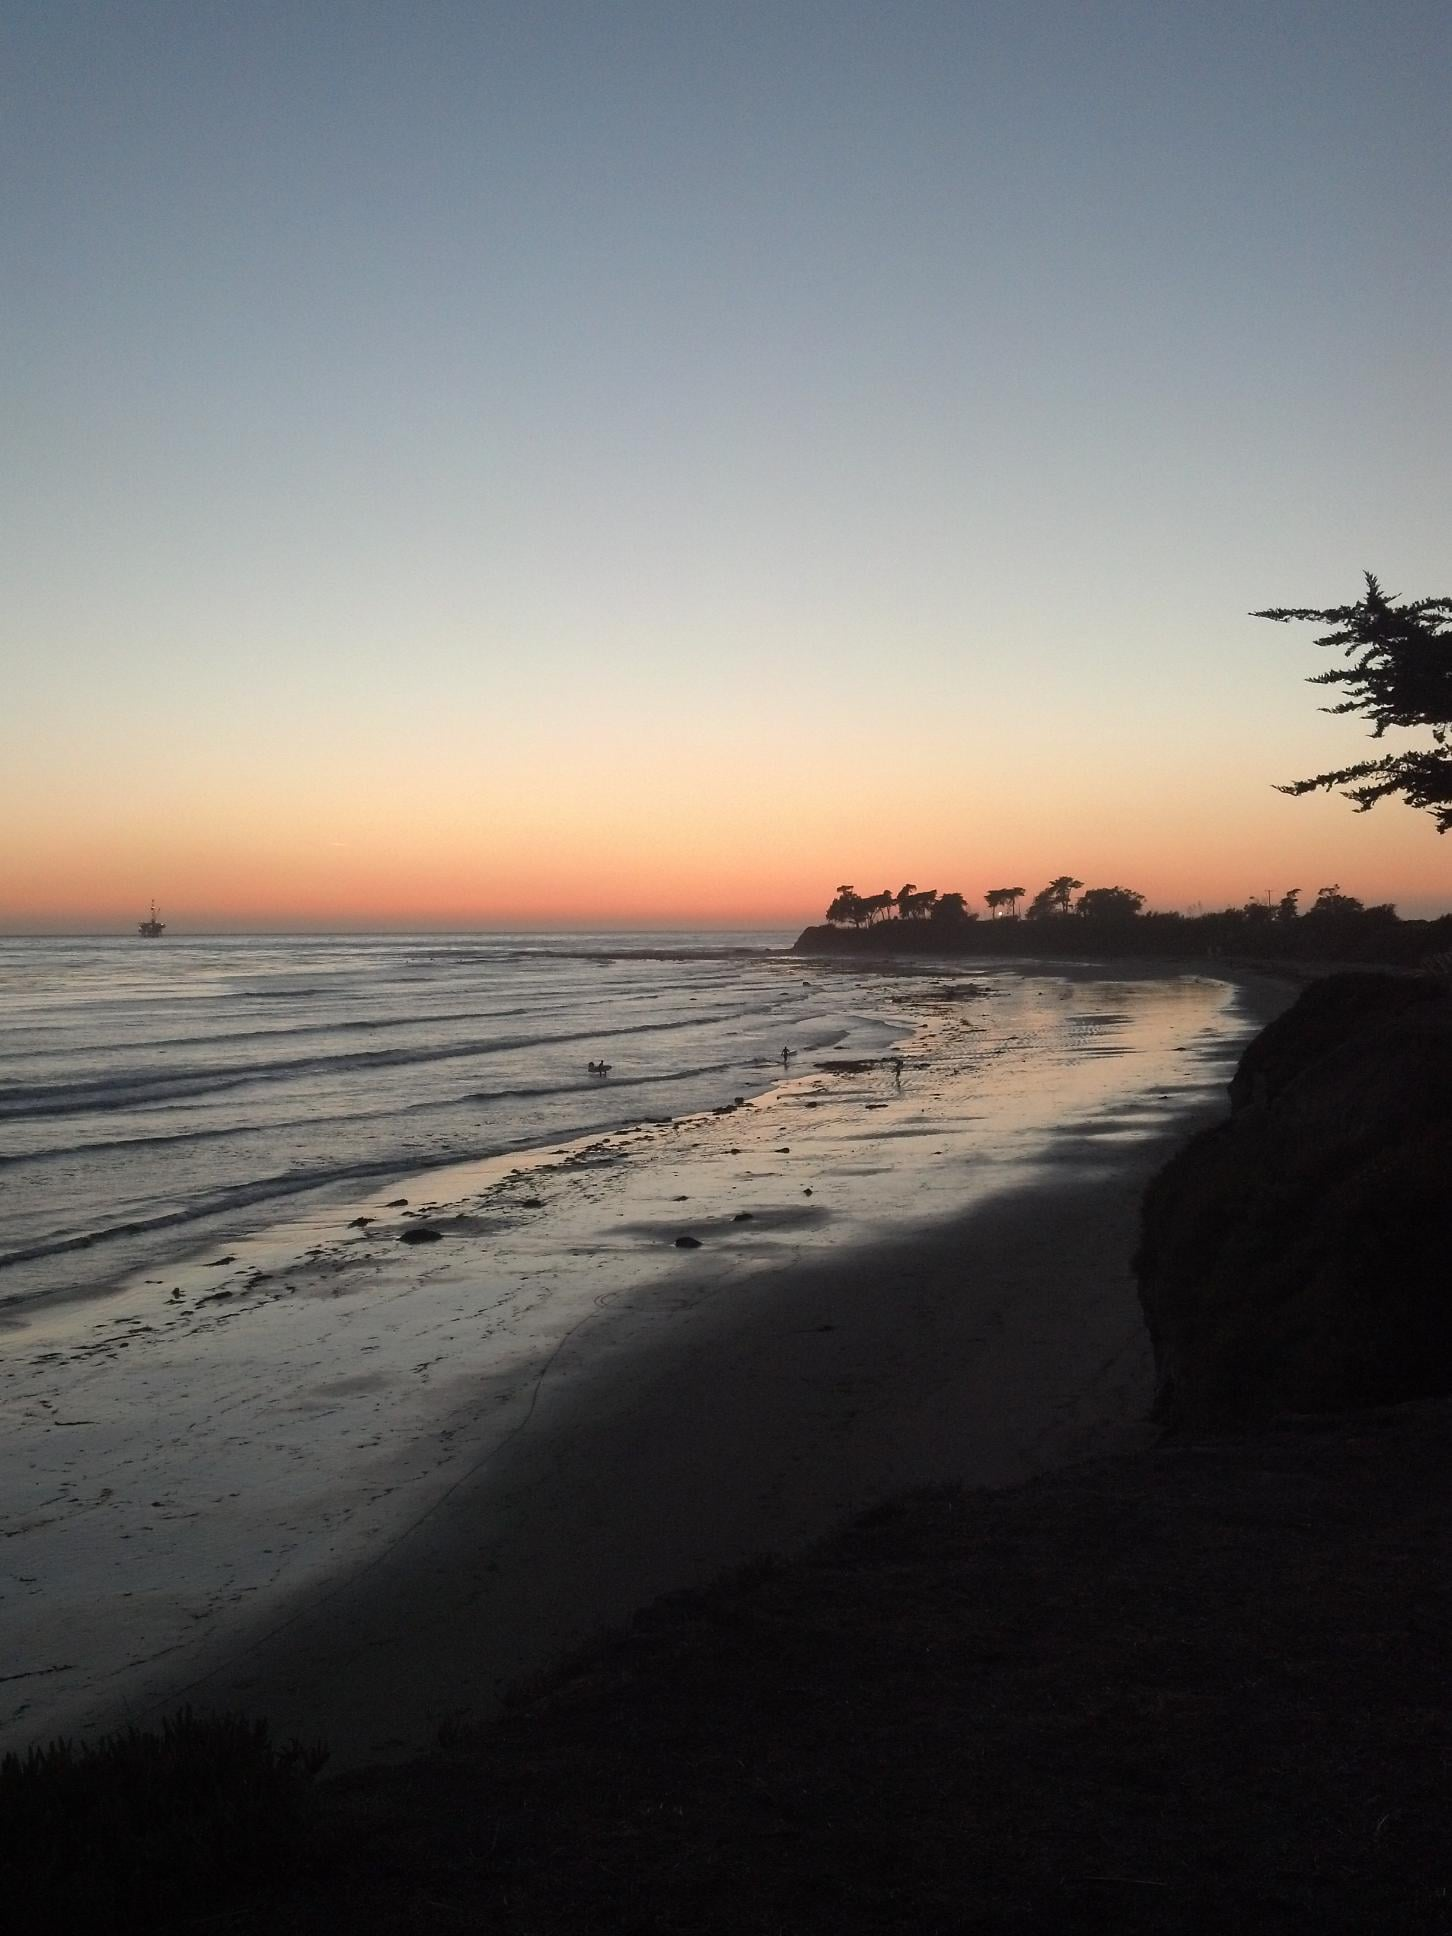 The beautiful sunset of Isla Vista